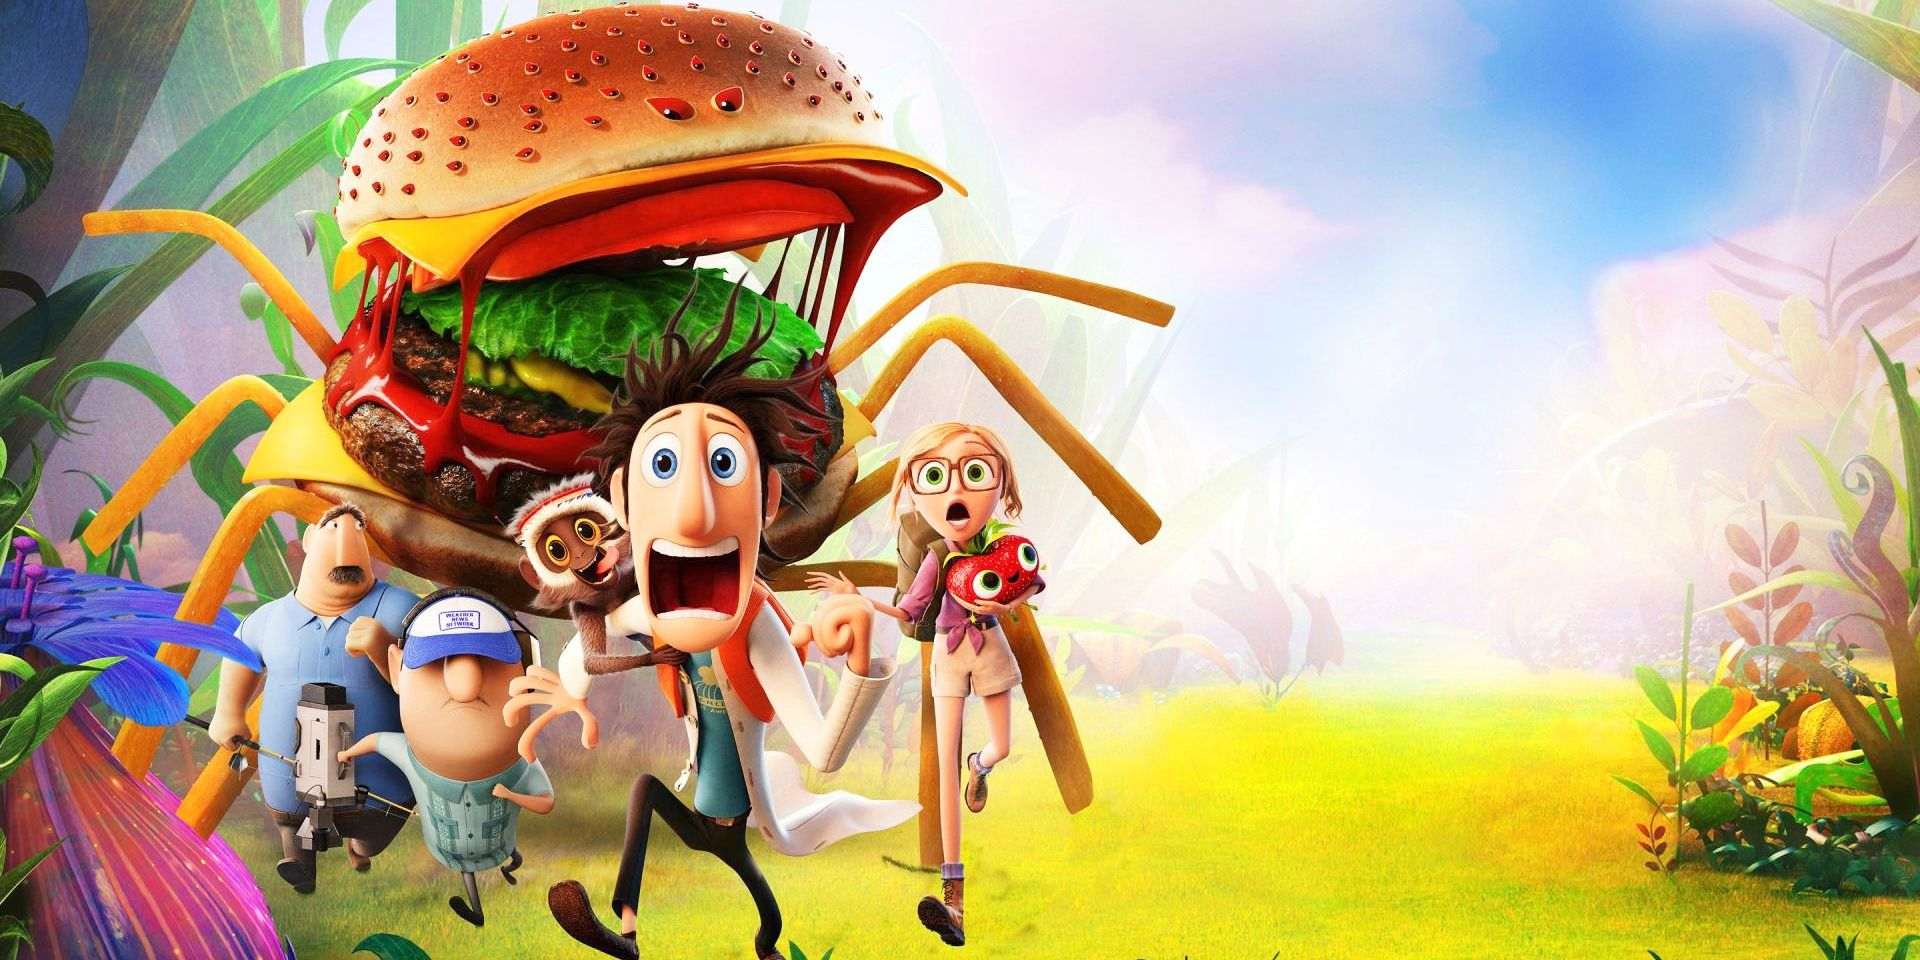 Cloudy with a Chance of Meatballs 3 Updates: Is A Threequel Happening?